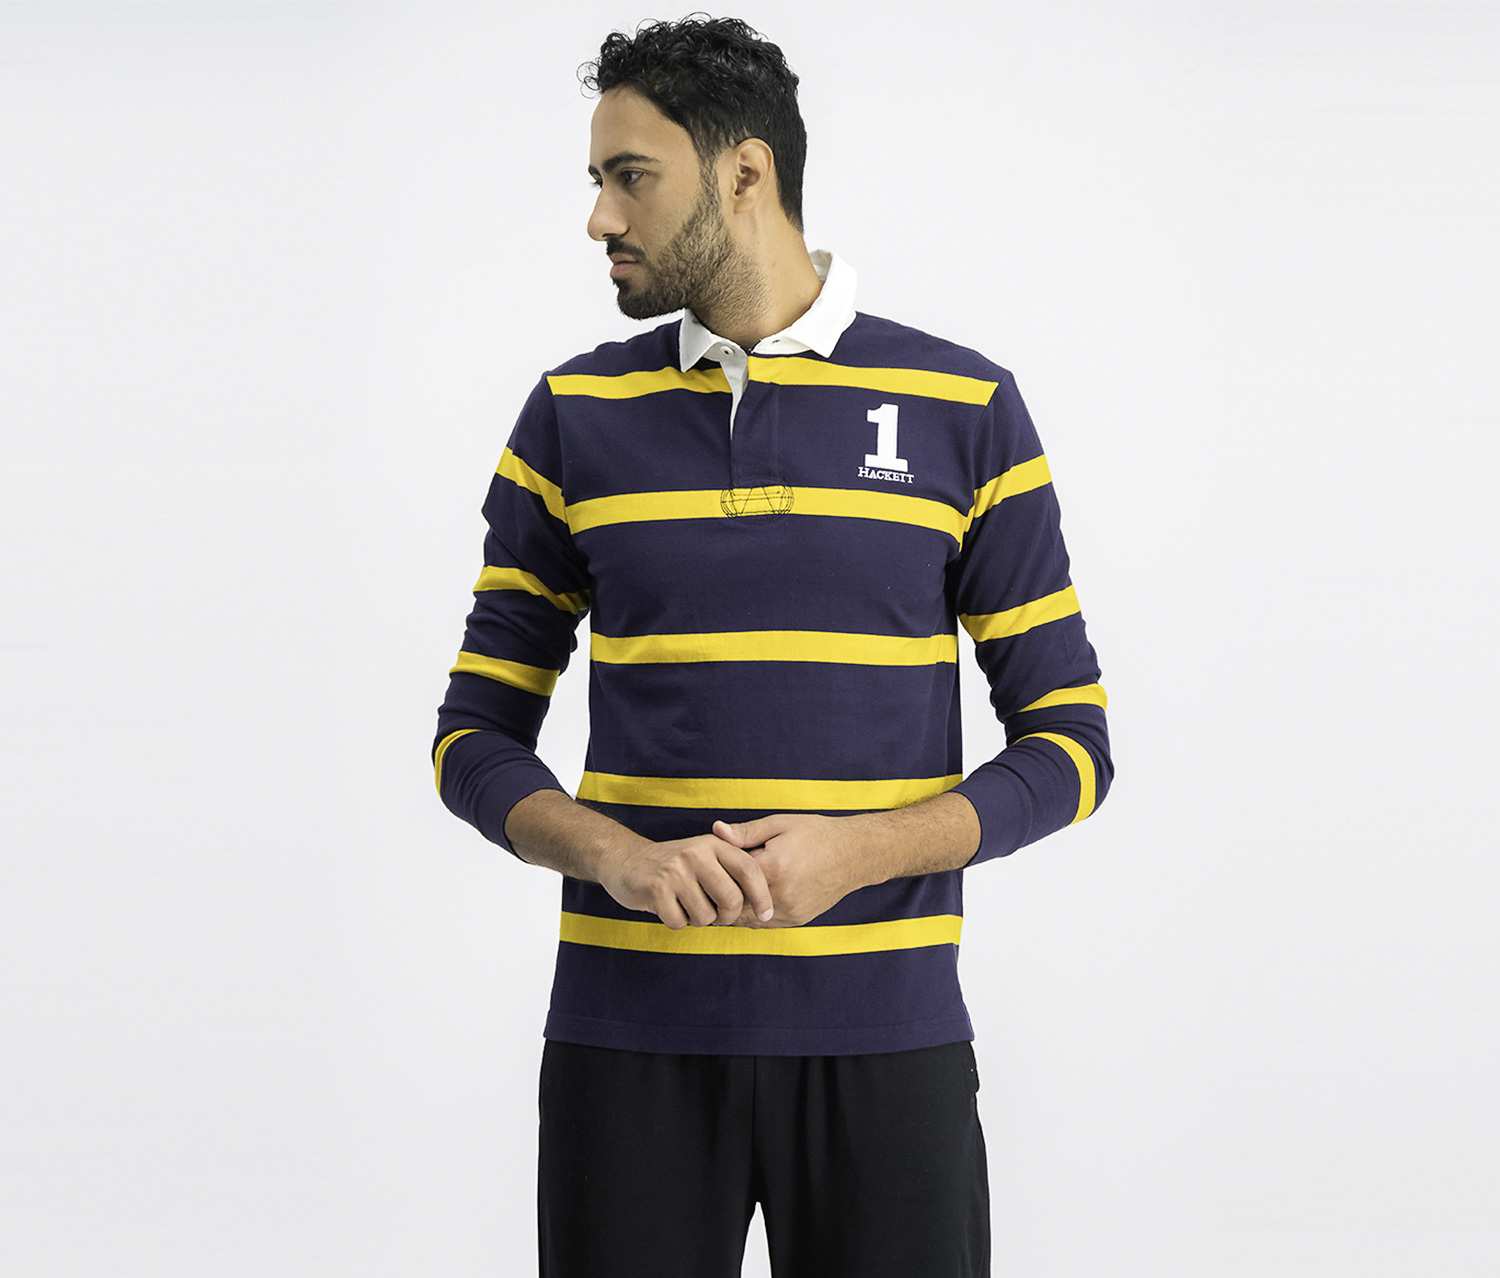 Men's Classic Fit Polo Shirt, Navy/Gold